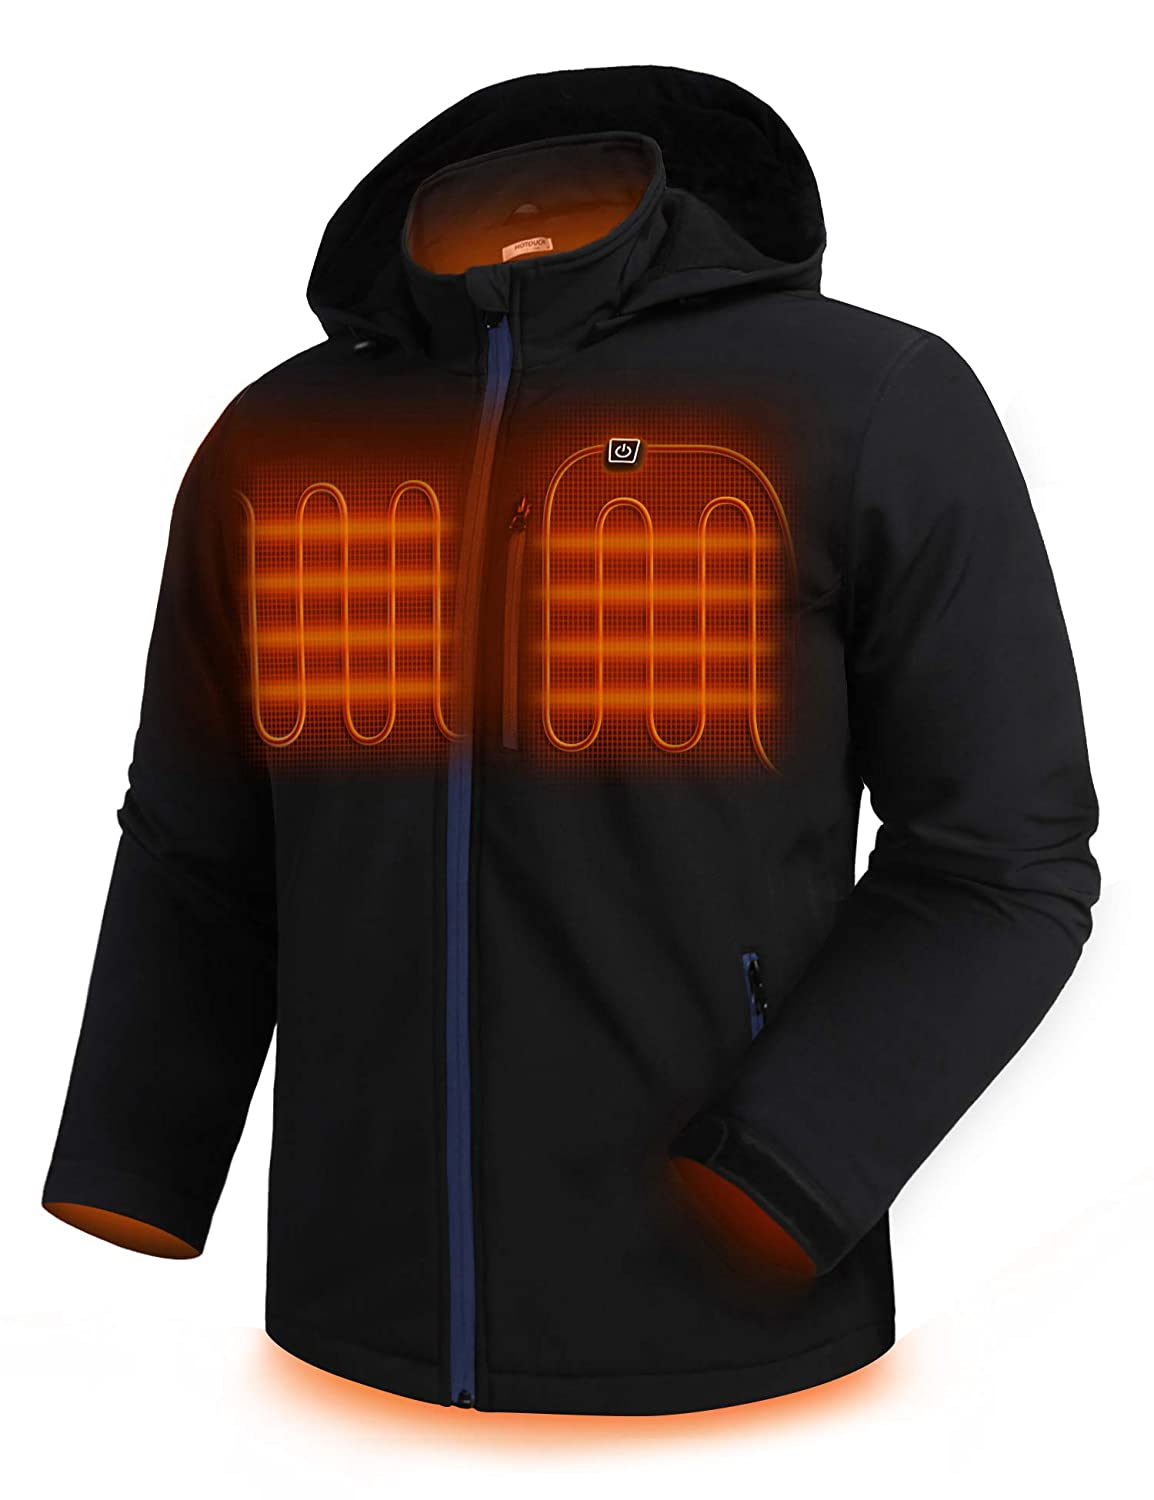 Hotouch Men's Heated Jacket Detachable Hood Coat Zipped Waterproof Thermal Clothing with 5.0Ah Battery Pack